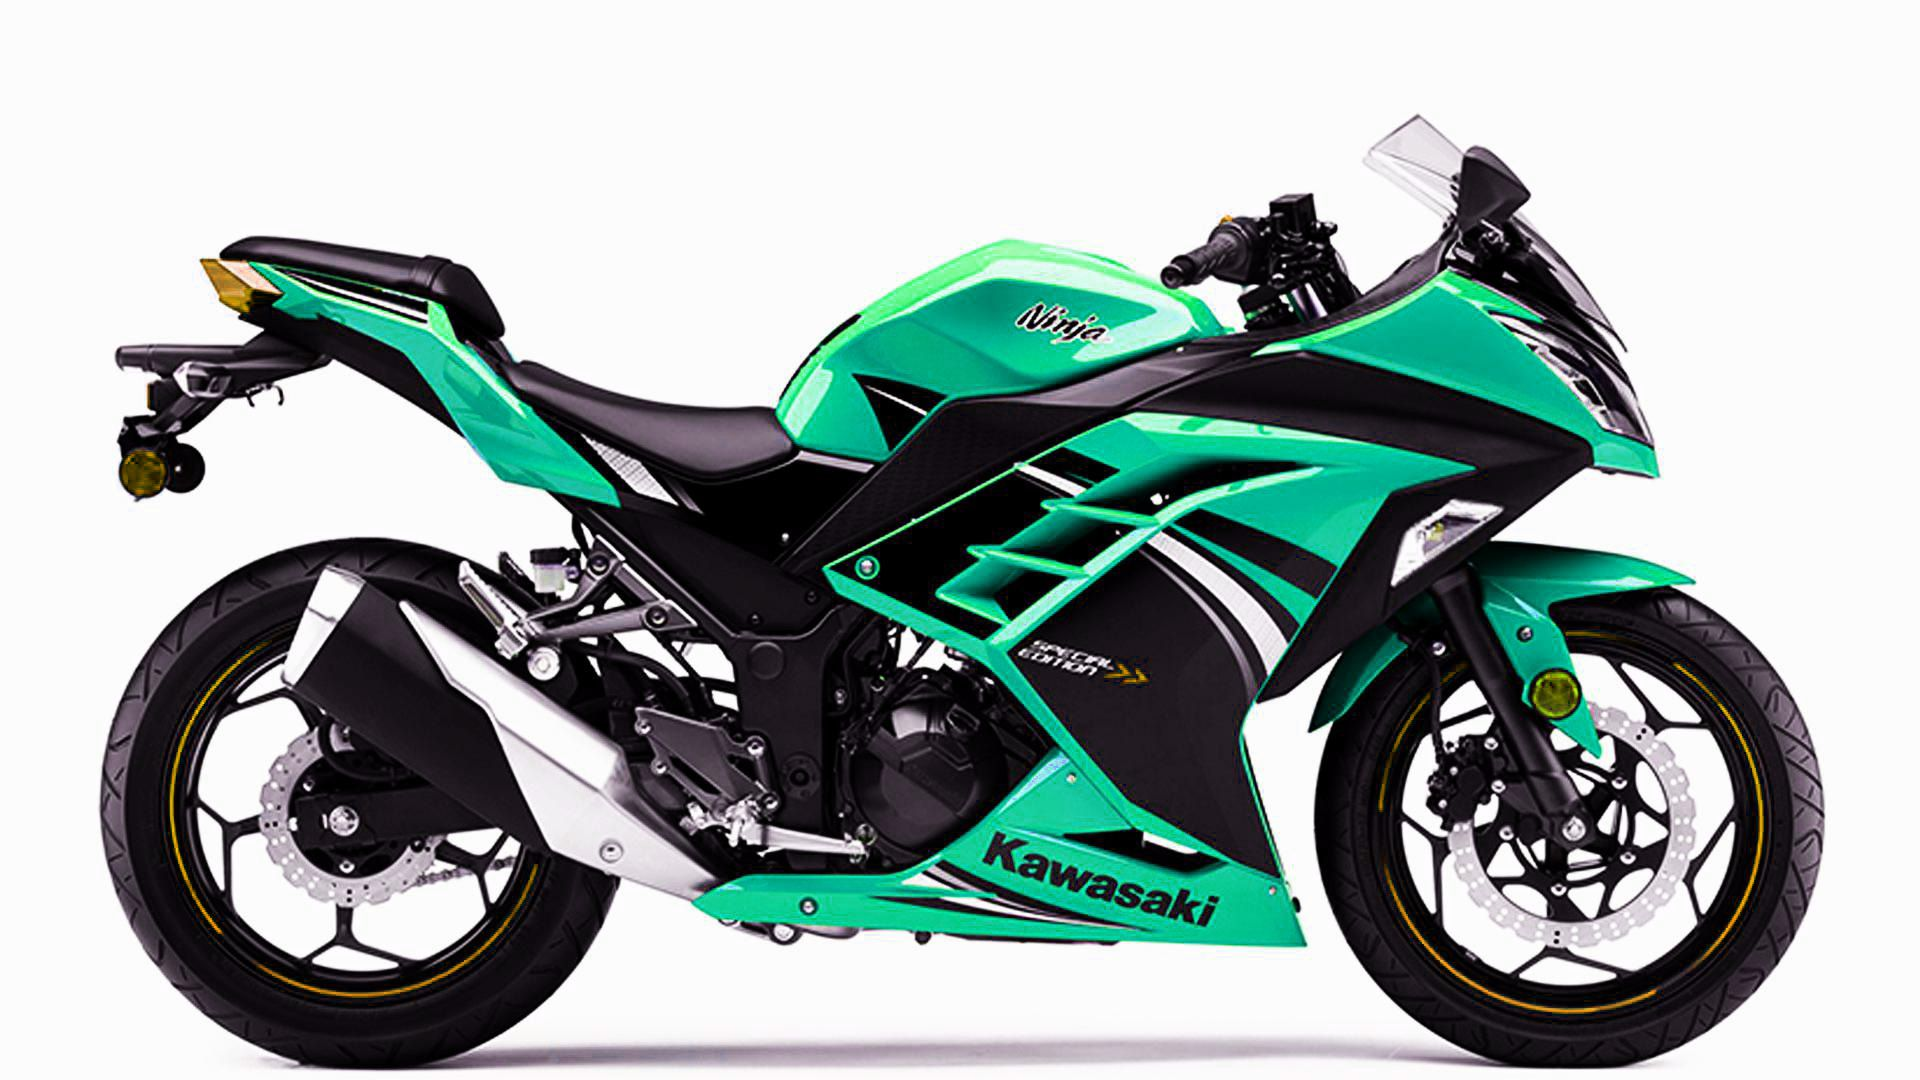 kawasaki ninja 300 green                                                                                                                                                                                 More